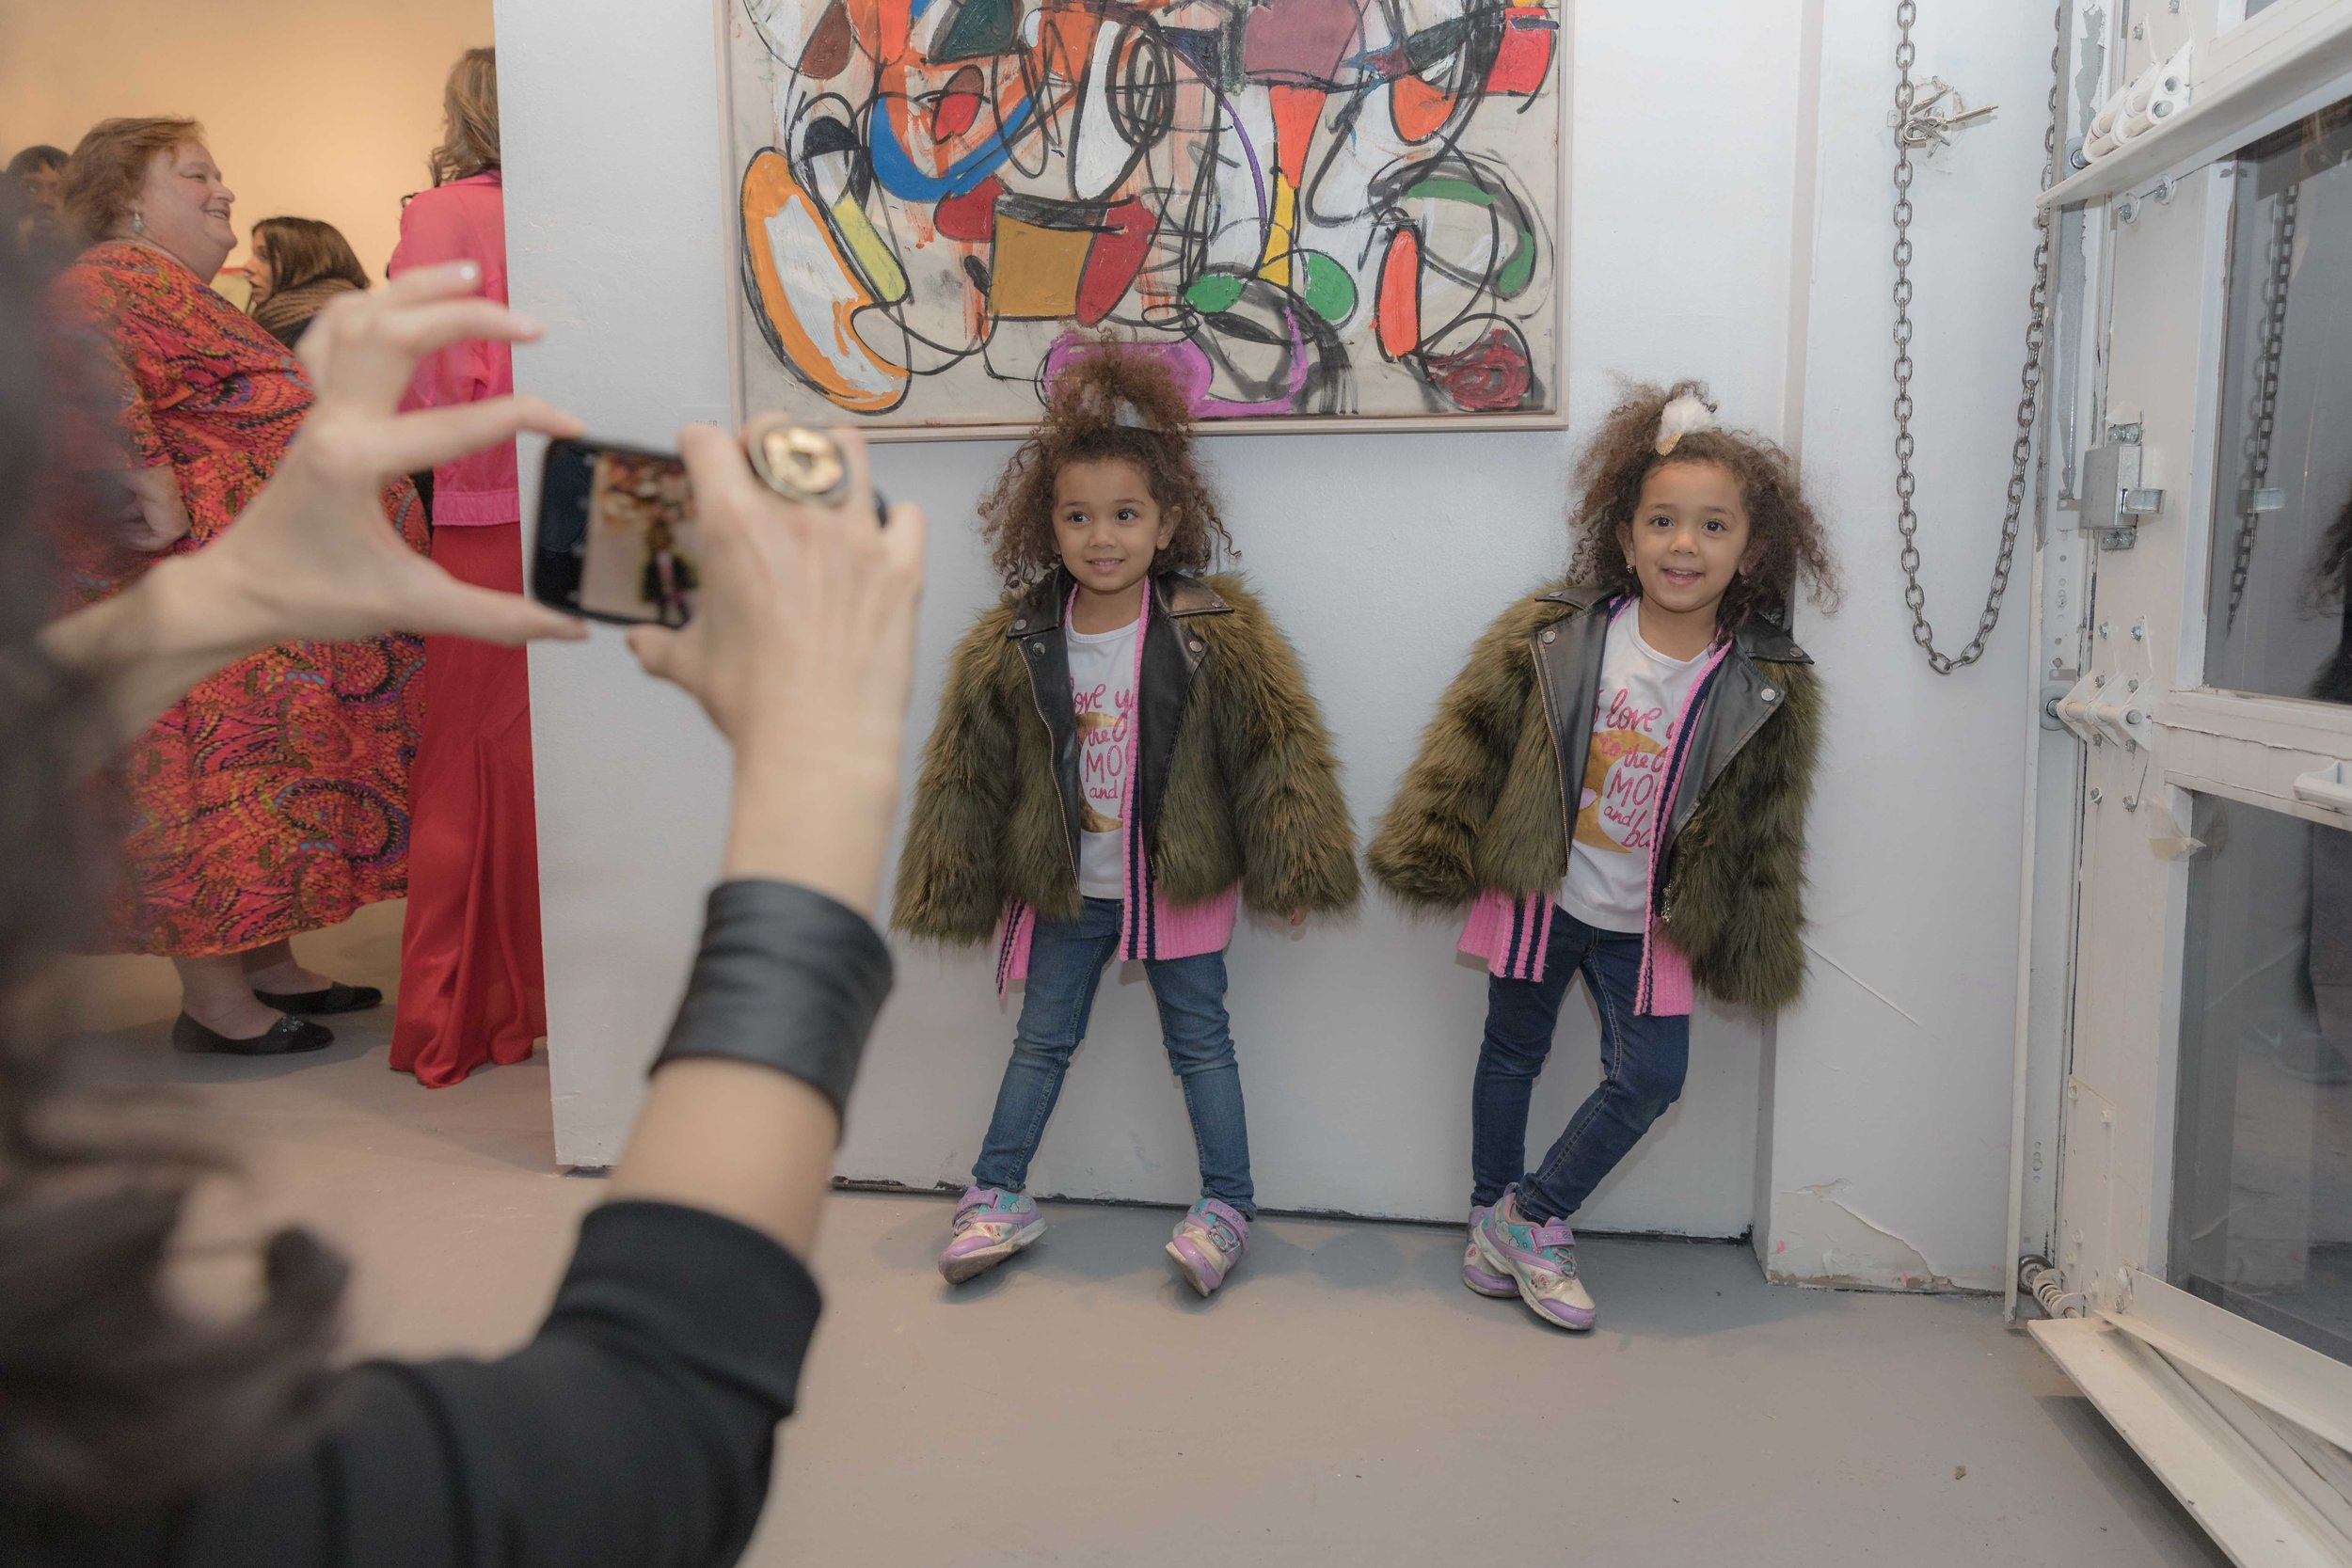 Twinning next to their favorite piece by Taher Jaoui